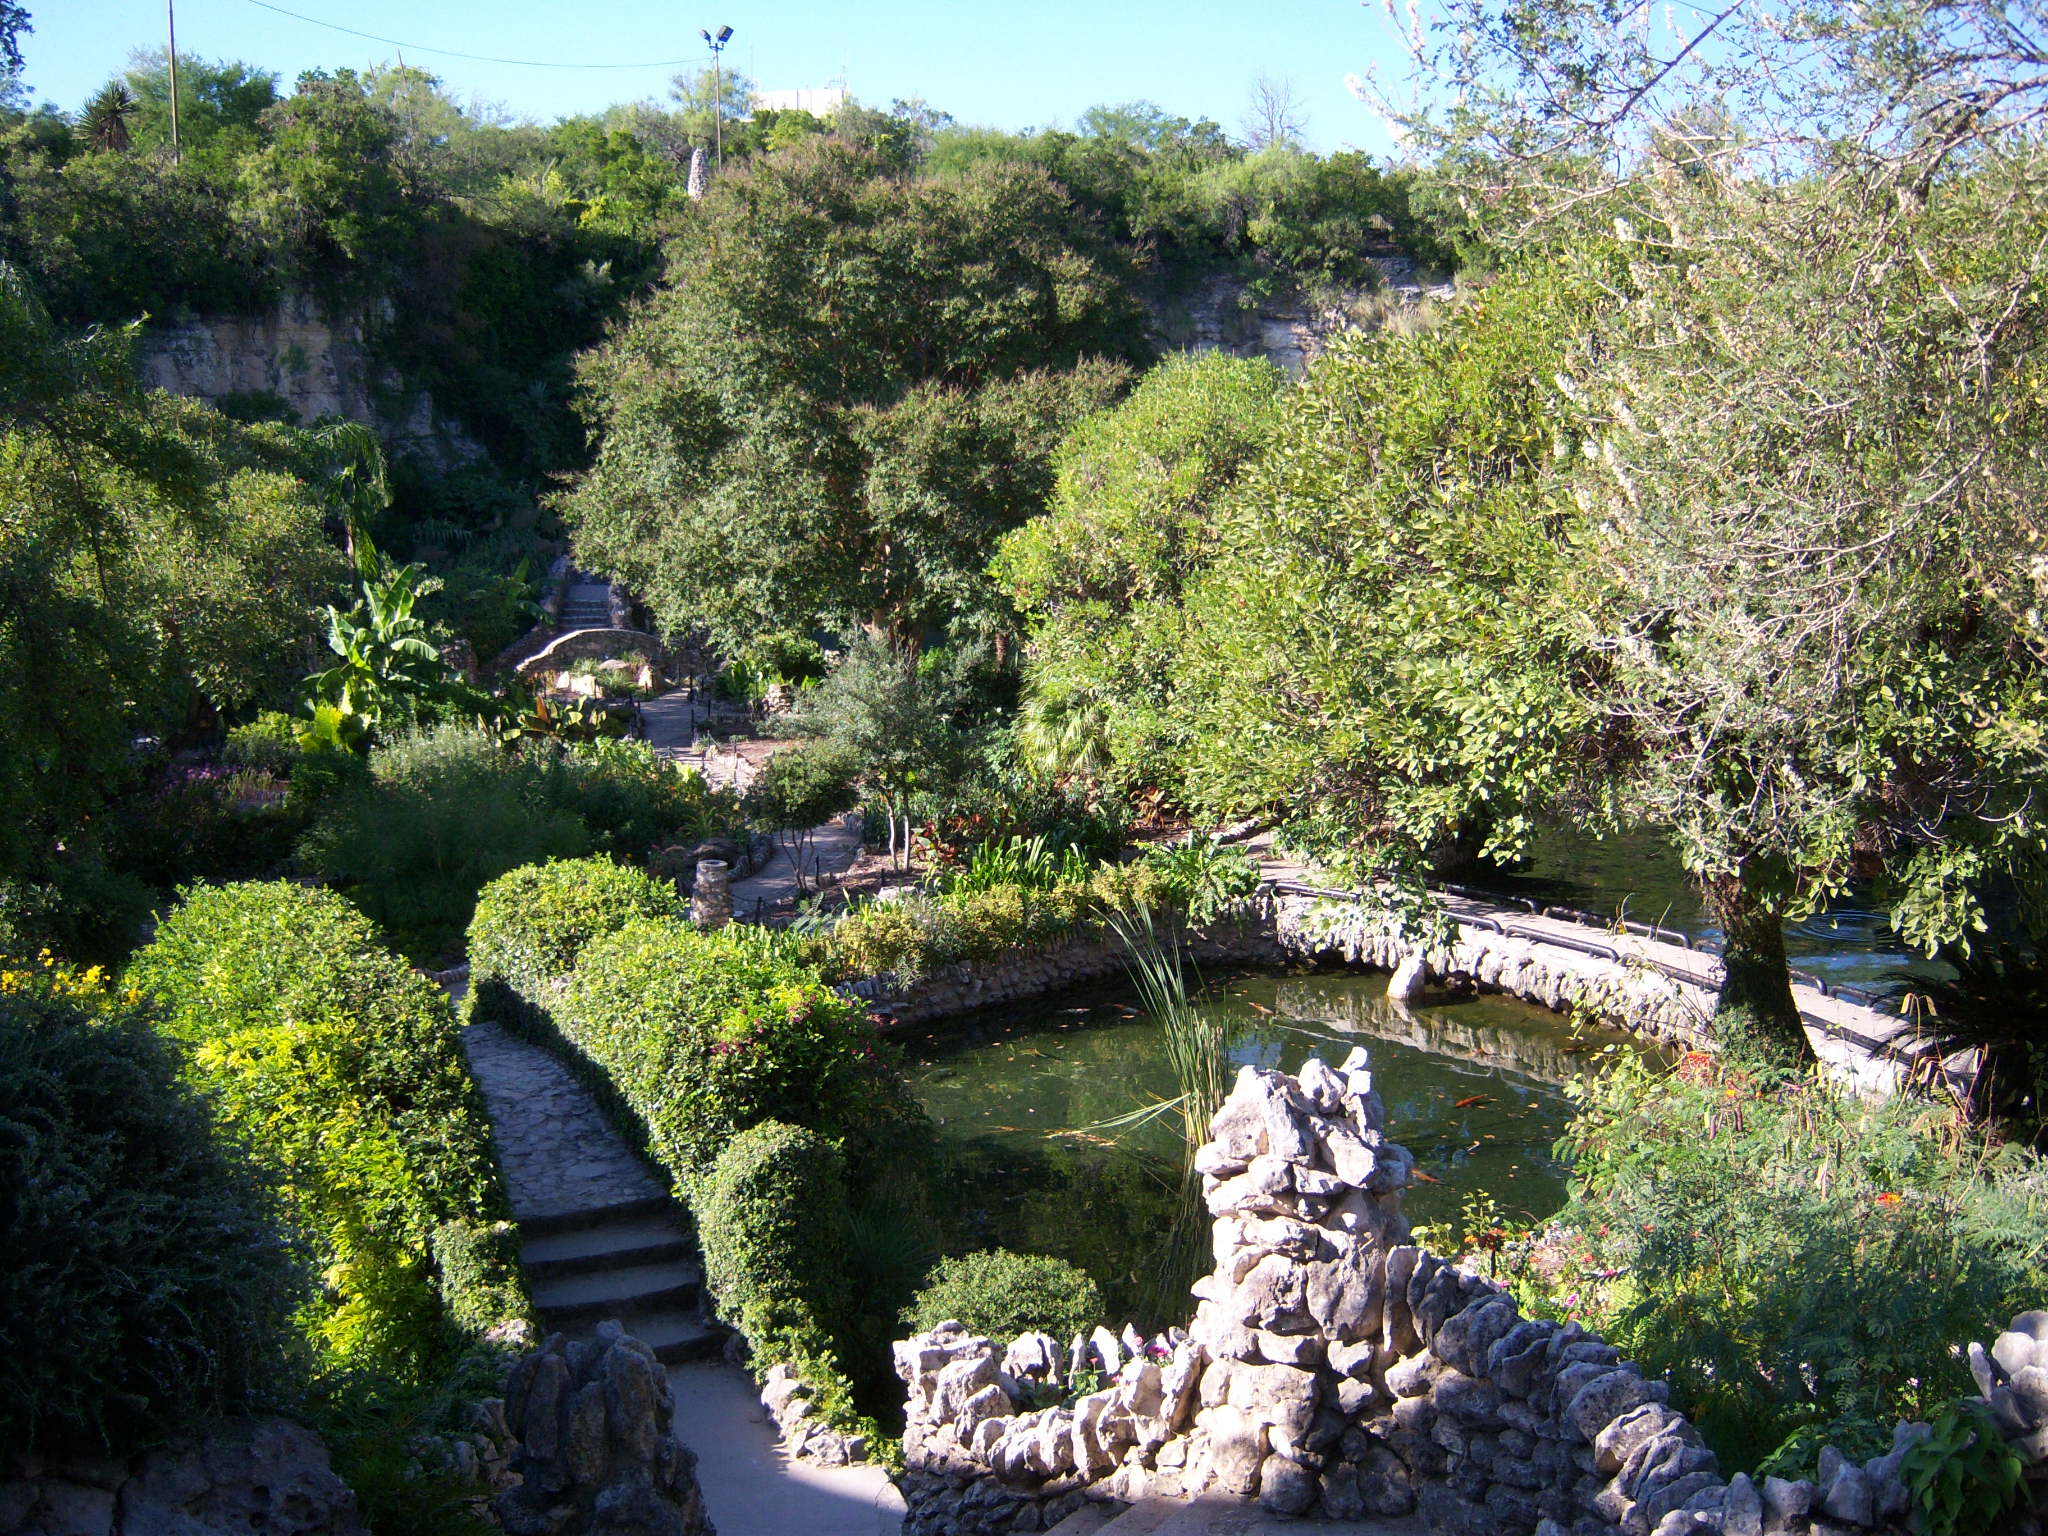 Photo of San Antonio's Japanese Tea Gardens.